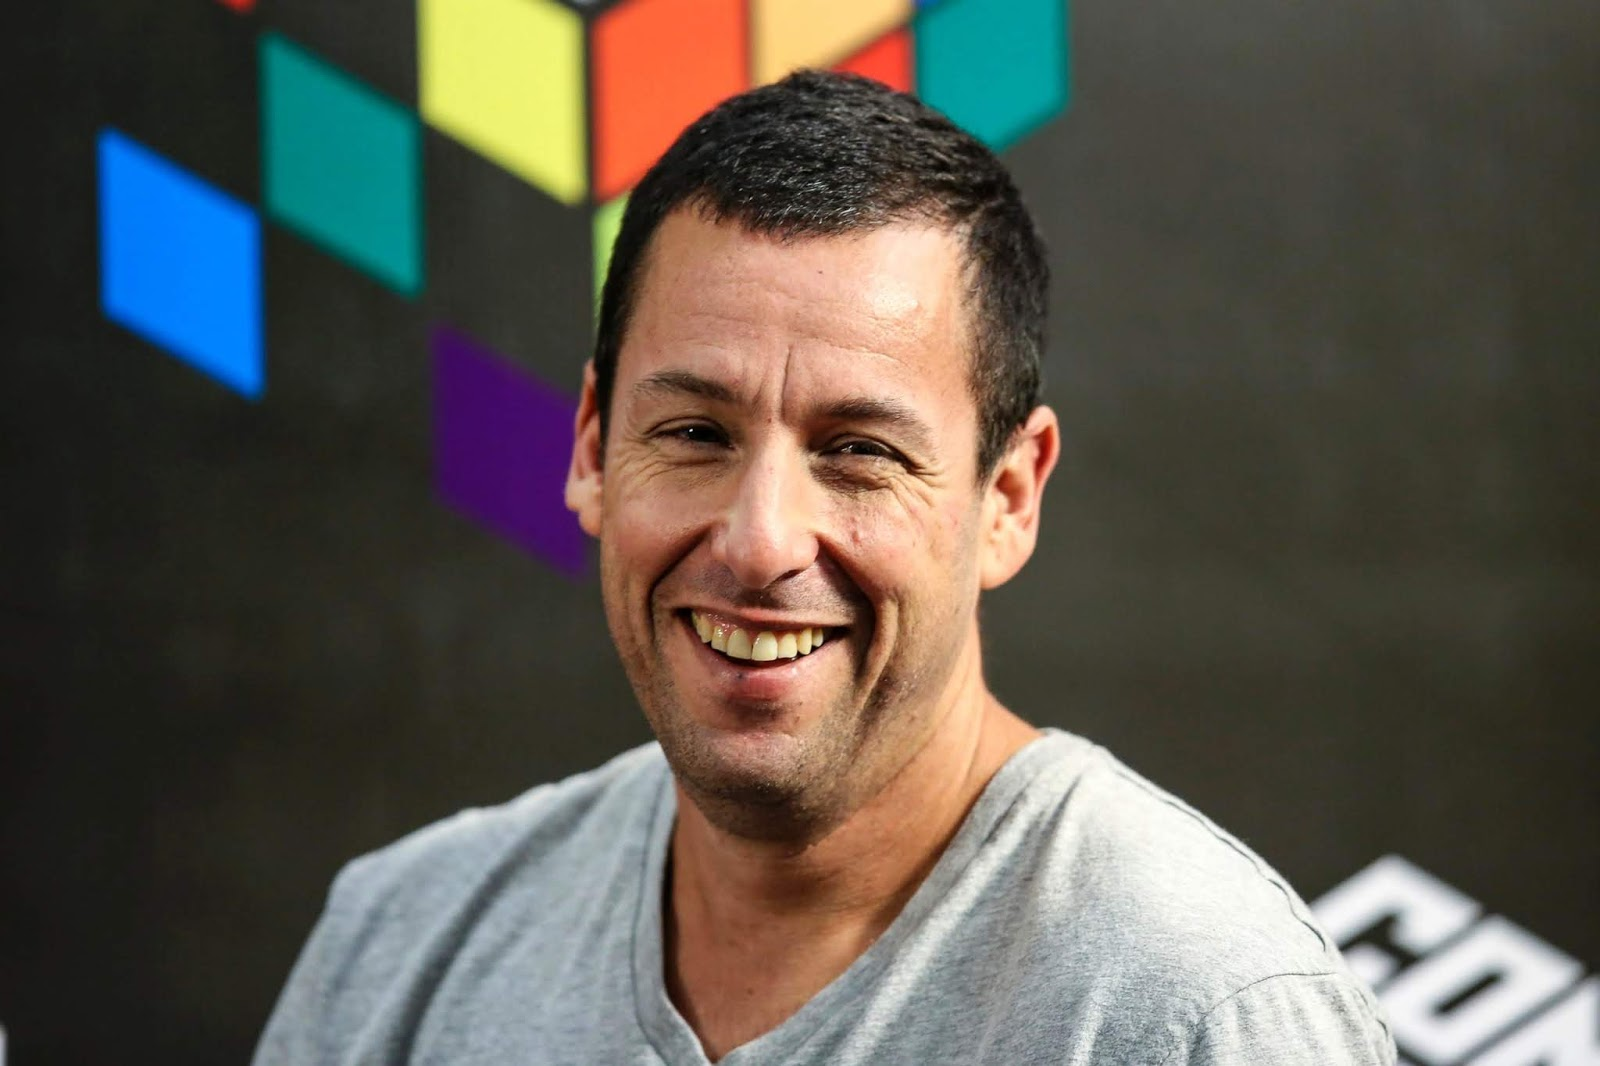 Top 66 Adam Sandler Photos, Images And Pictures Free ...